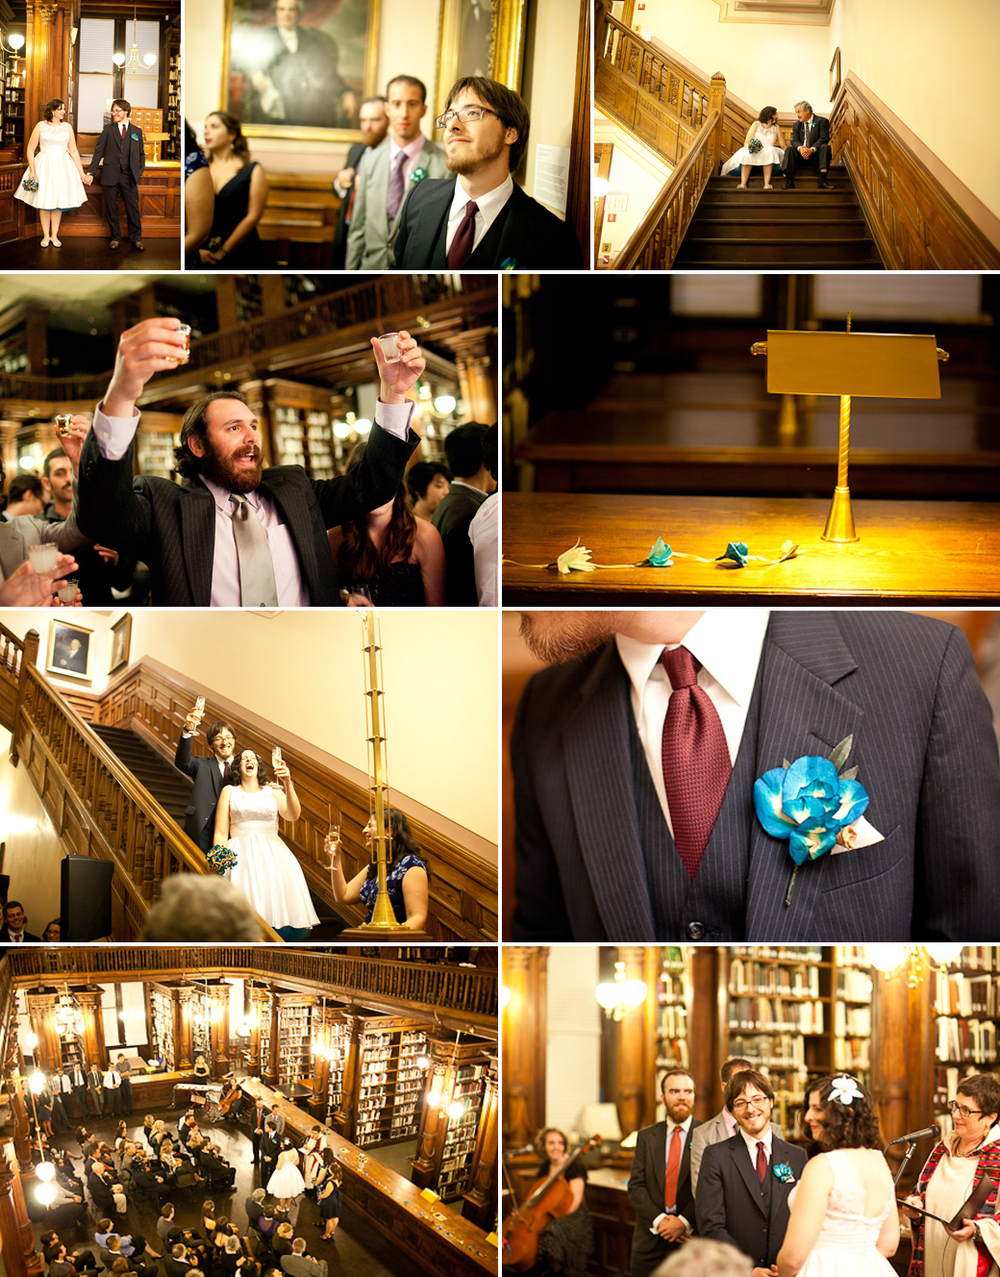 brooklyn-historical-society-wedding-venue.jpg